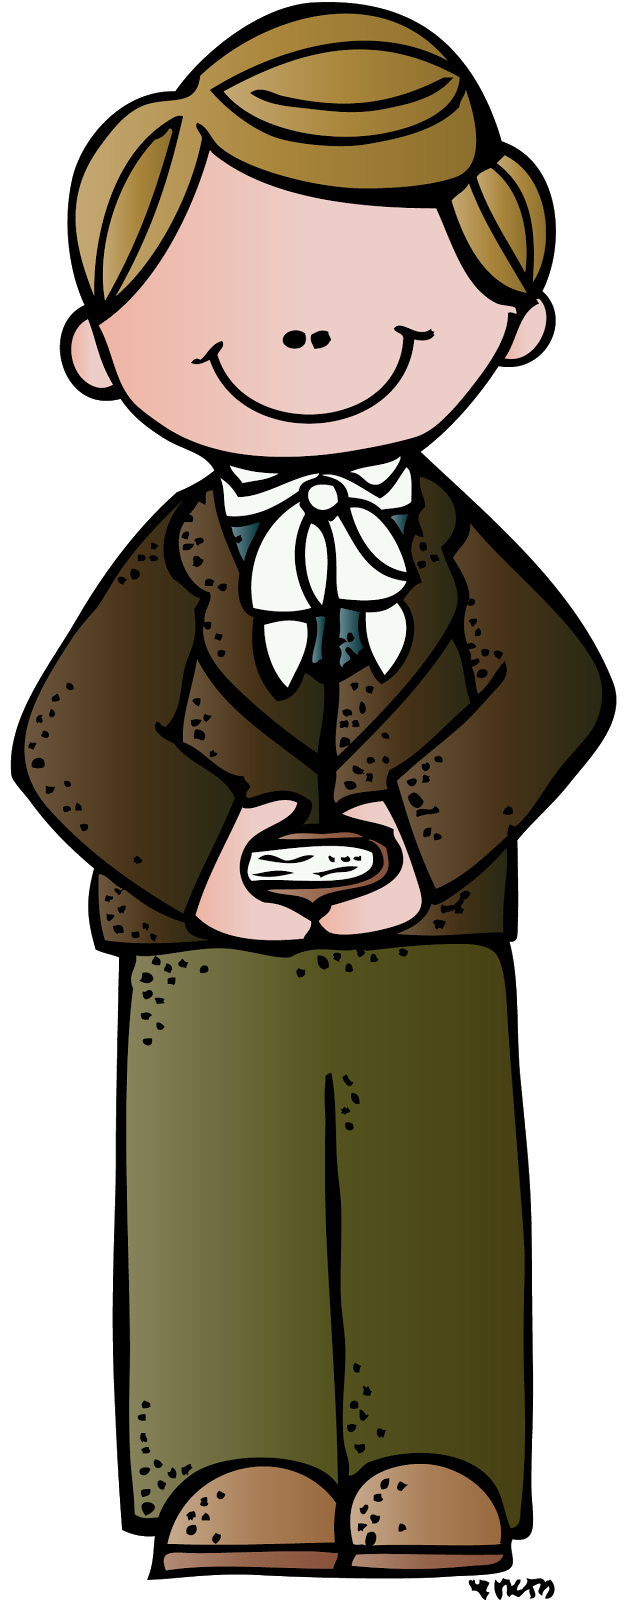 Joseph Smith Clip Art of Teaching